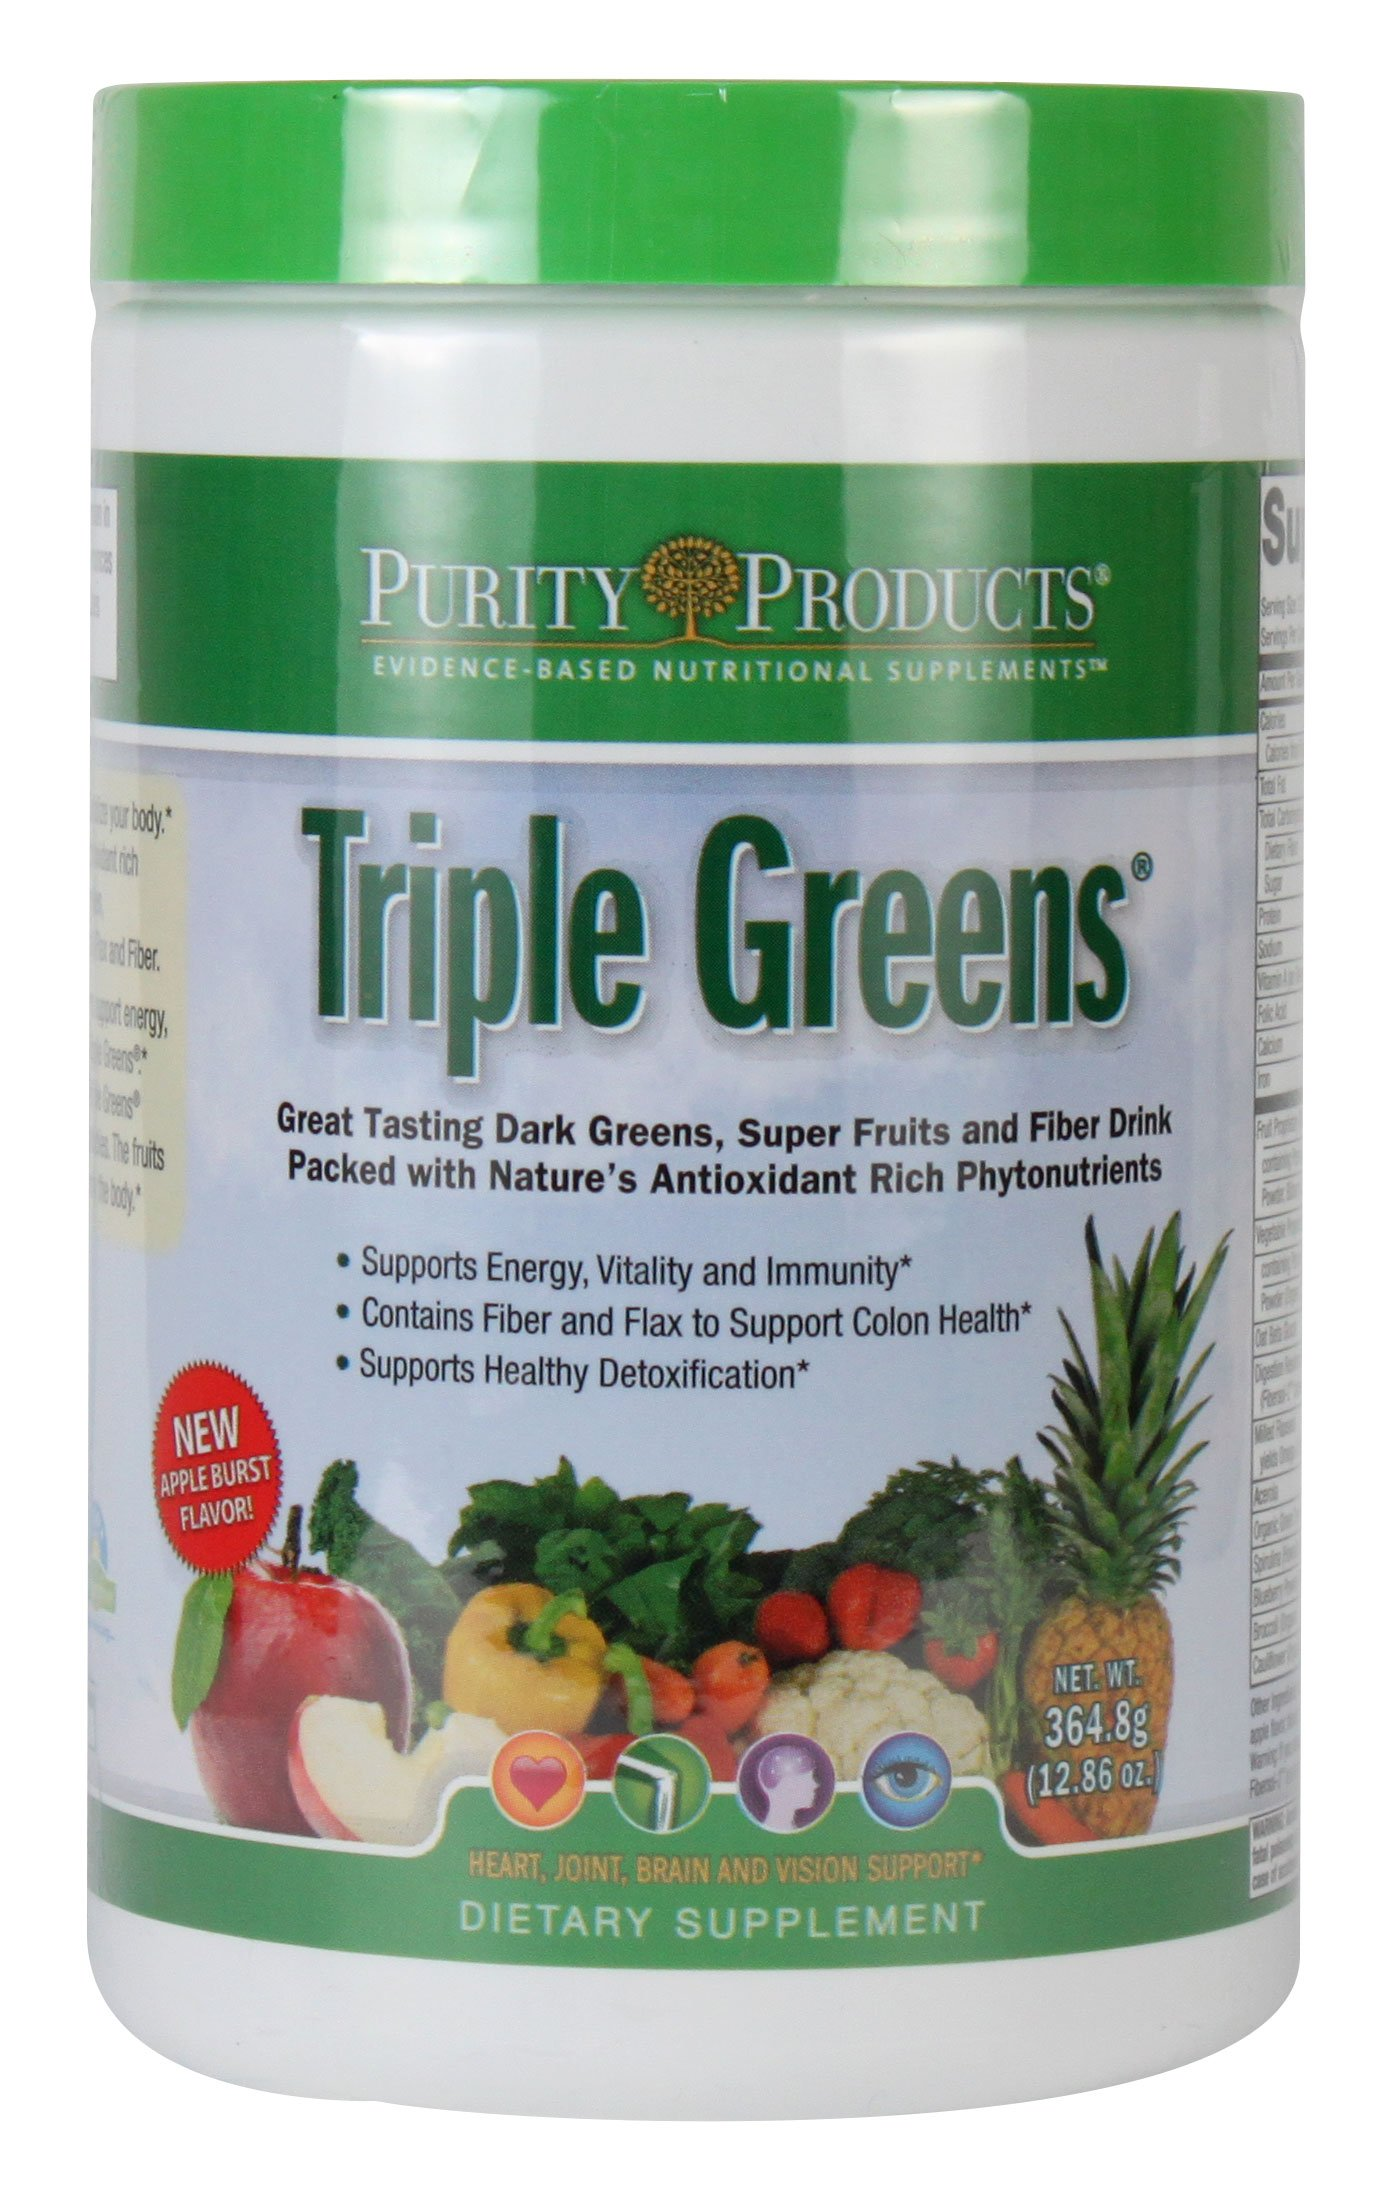 Triple Greens Powder - 364.8g/12.86oz - 30 Servings, from Purity Products